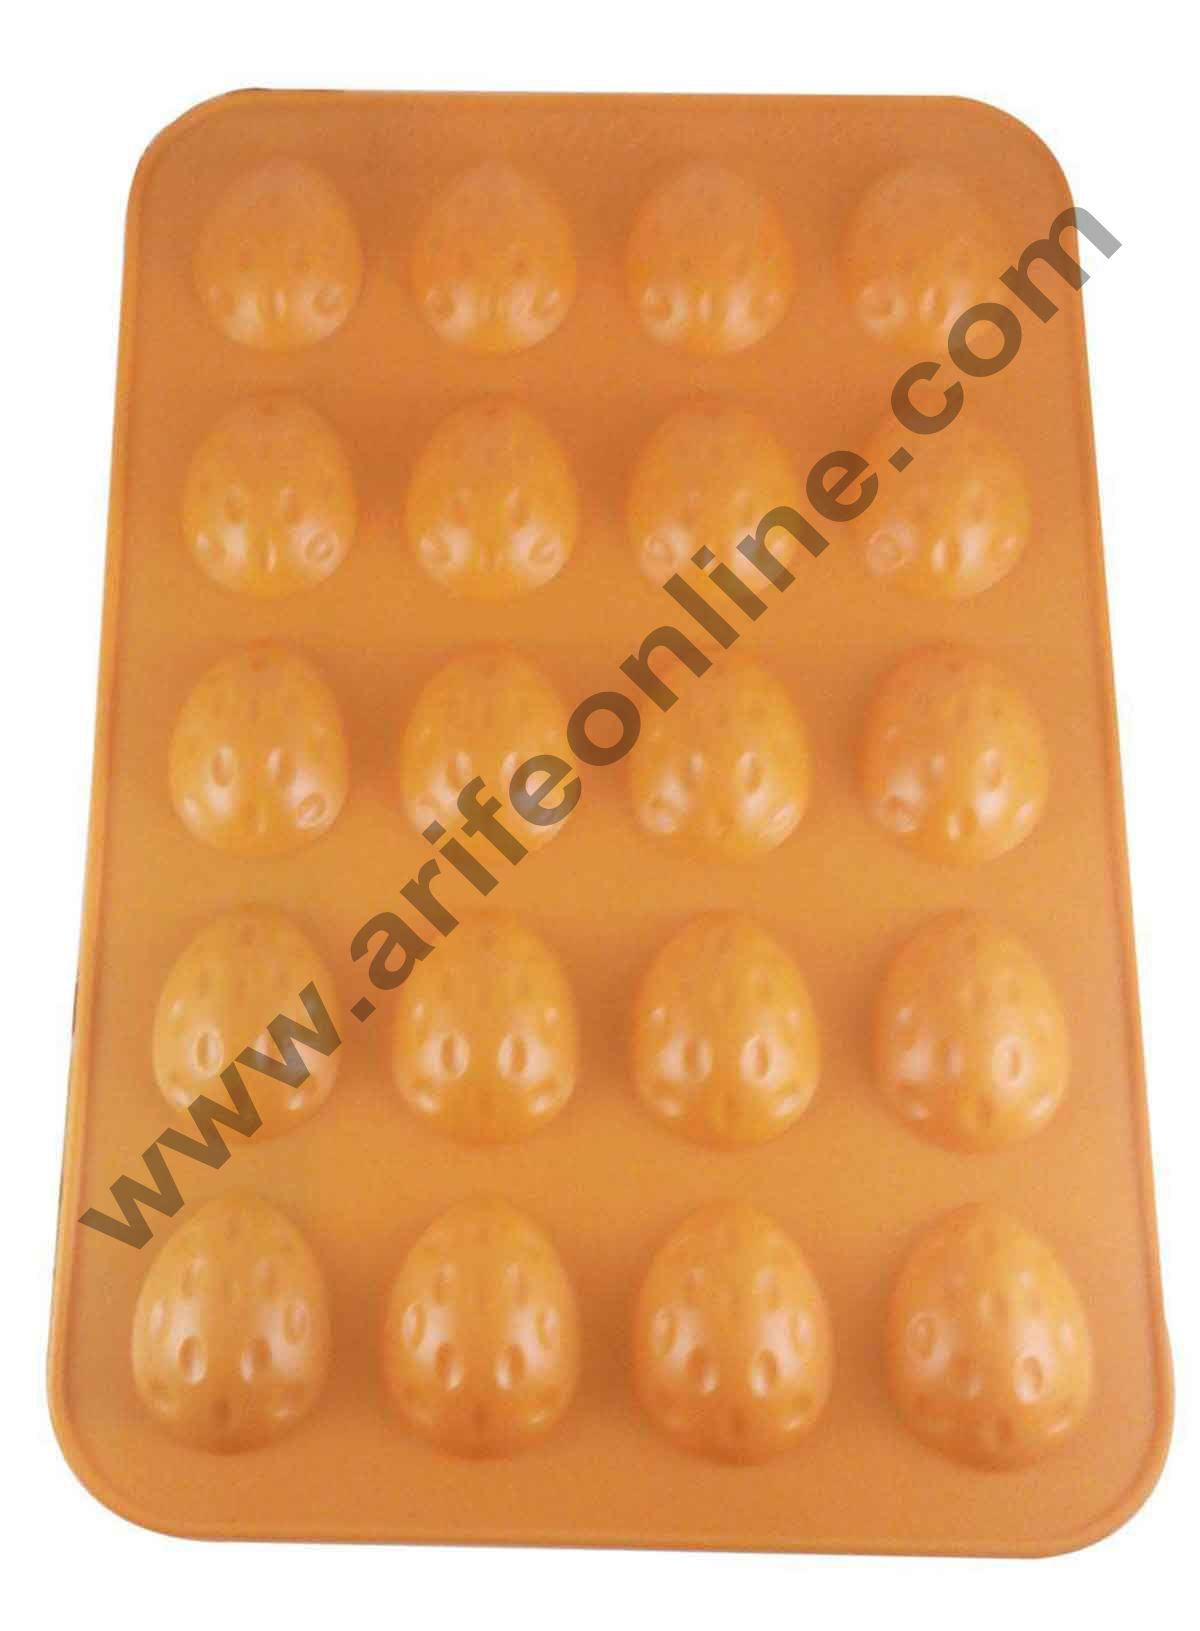 Cake Decor Silicon 20 in 1 Almond Shape Muffin Cupcake Mould